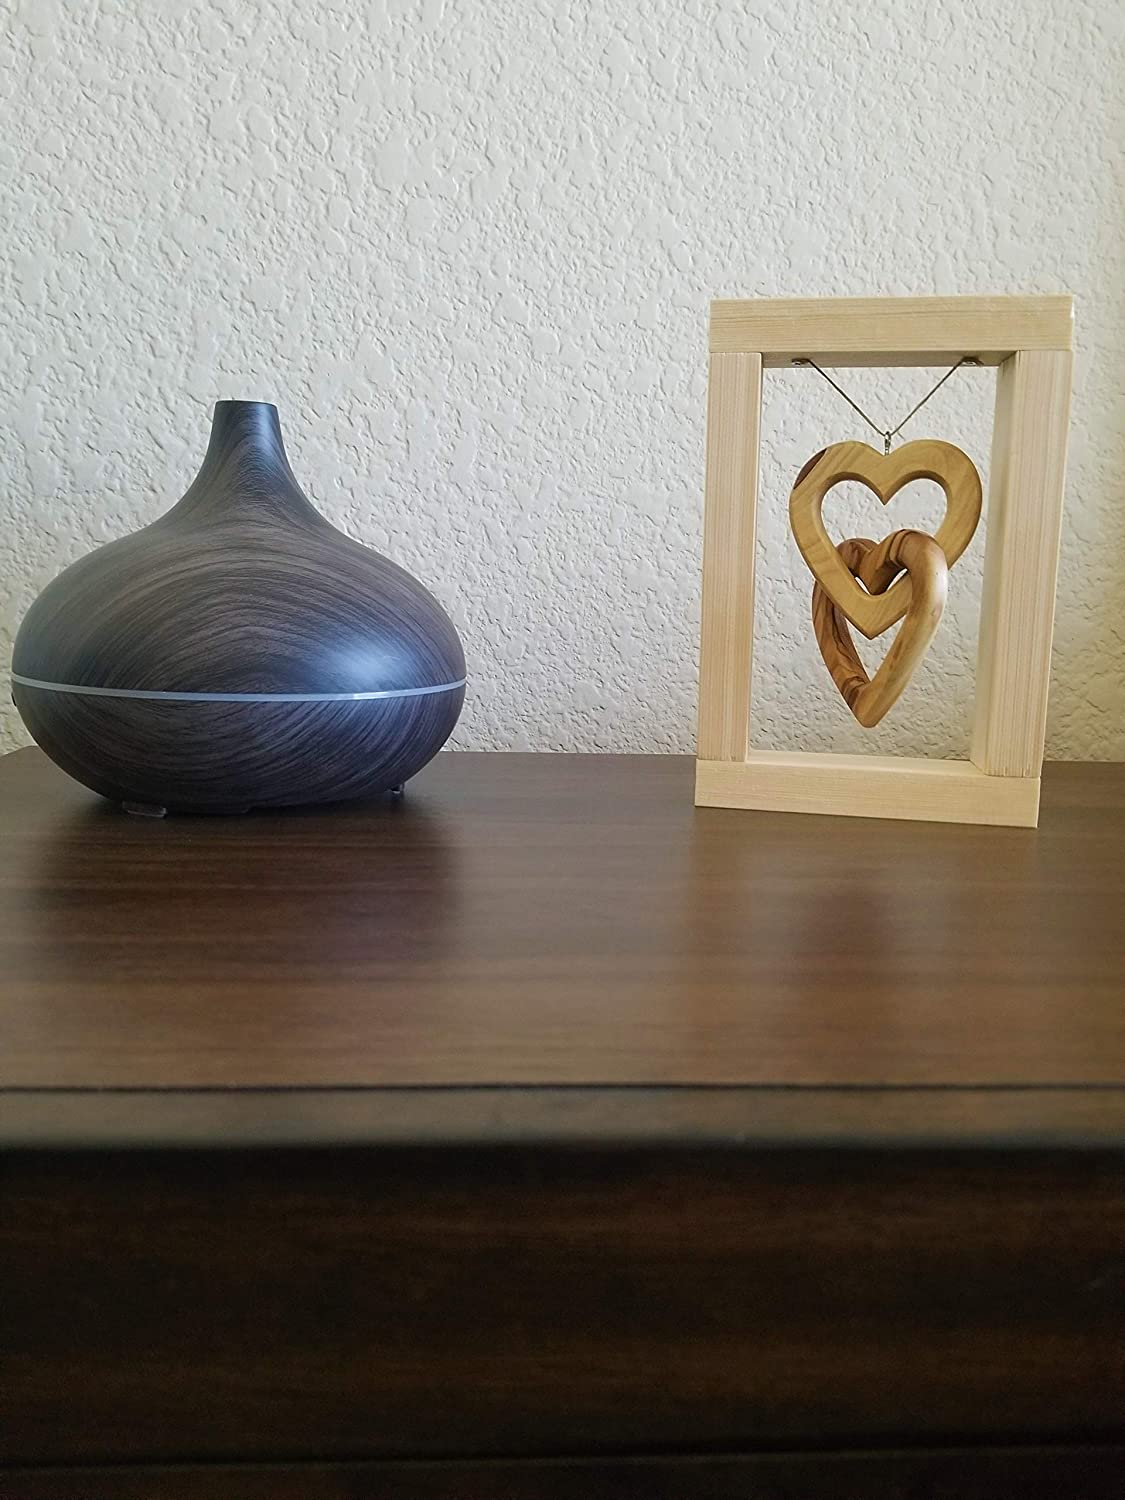 3D Wood Heart Frame a nice decoration for the Home or Office and a great gift on many occasions like the Valentines Day Olive wood Heart from Bethlehem and Yellow wood frame from Finland 3D Heart